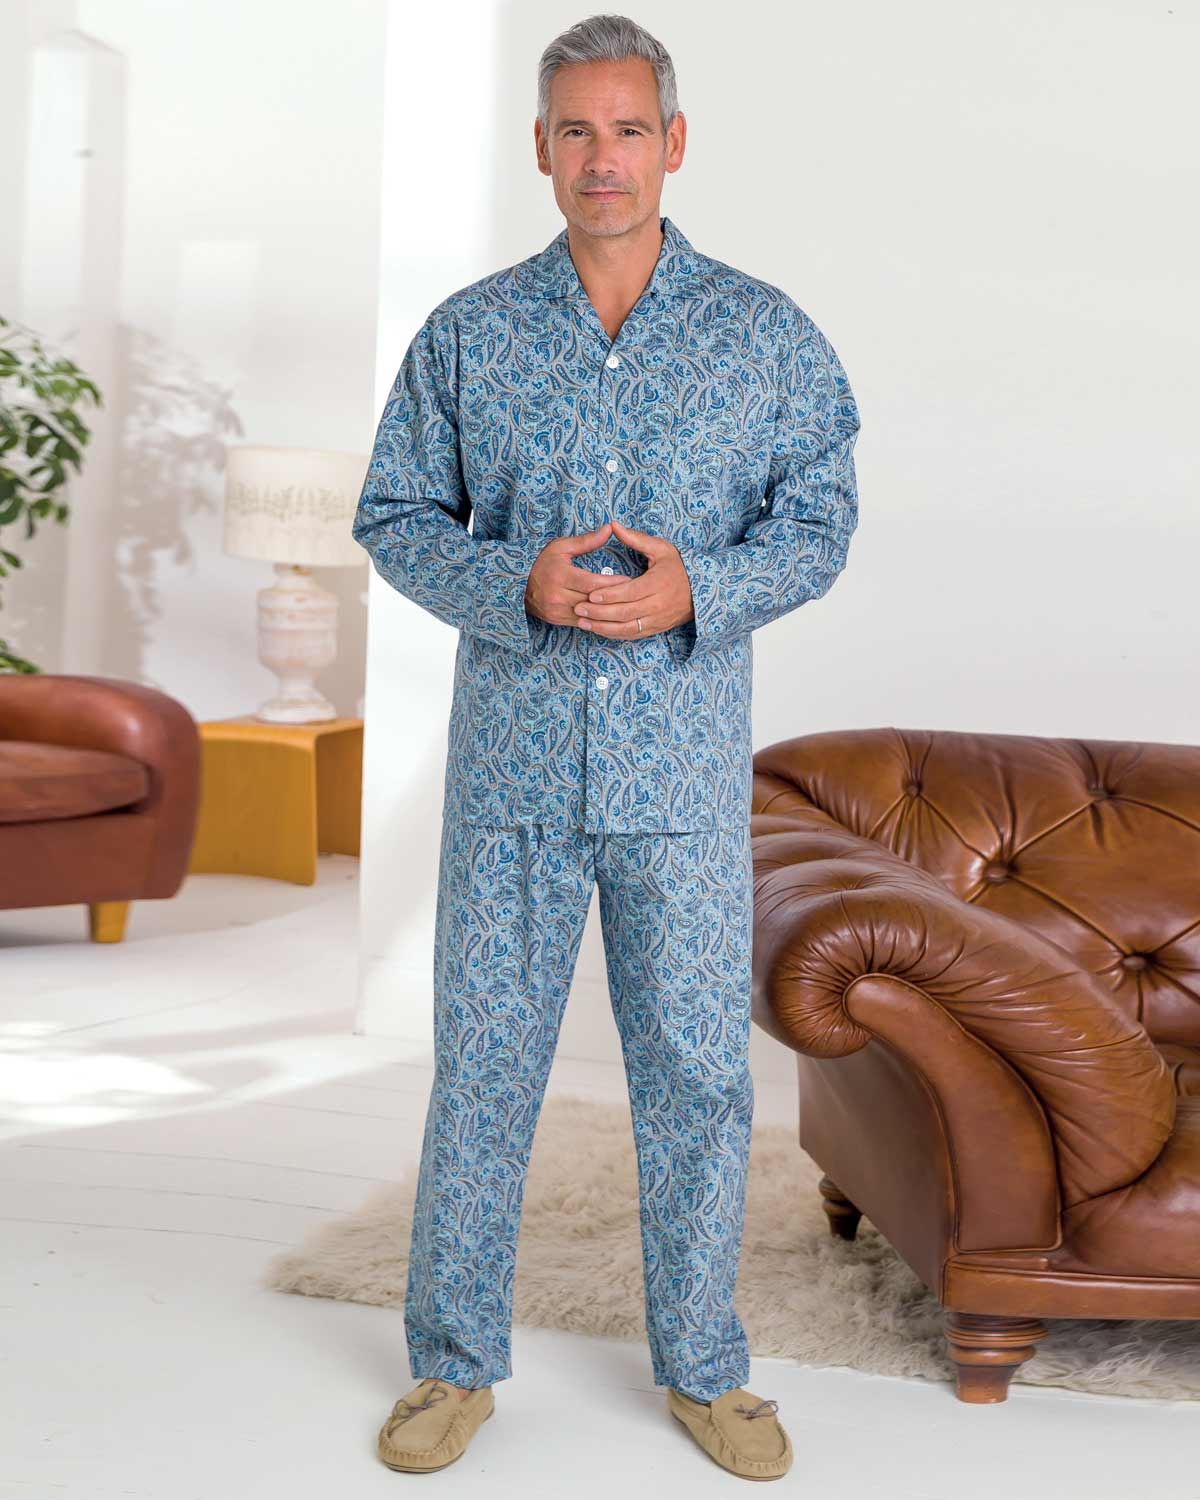 Find high quality printed Paisley Patterns Men's Pajamas at CafePress. Find great designs on super comfy t-shirts and pick out a pair of soft cotton patterned bottoms to go with. Free Returns % Satisfaction Guarantee Fast Shipping.